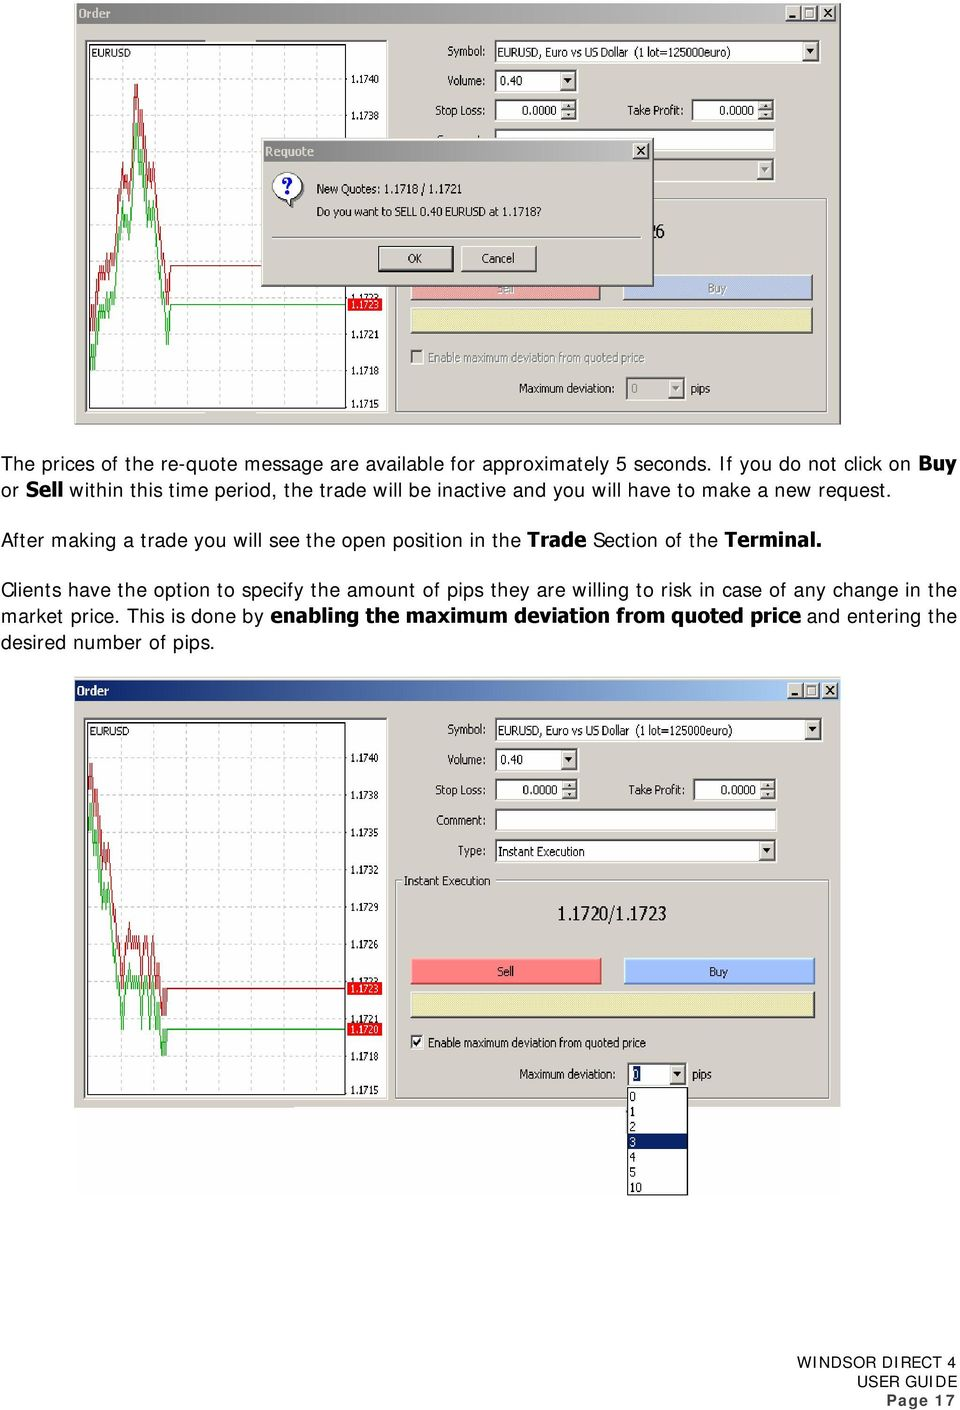 After making a trade you will see the open position in the Trade Section of the Terminal.